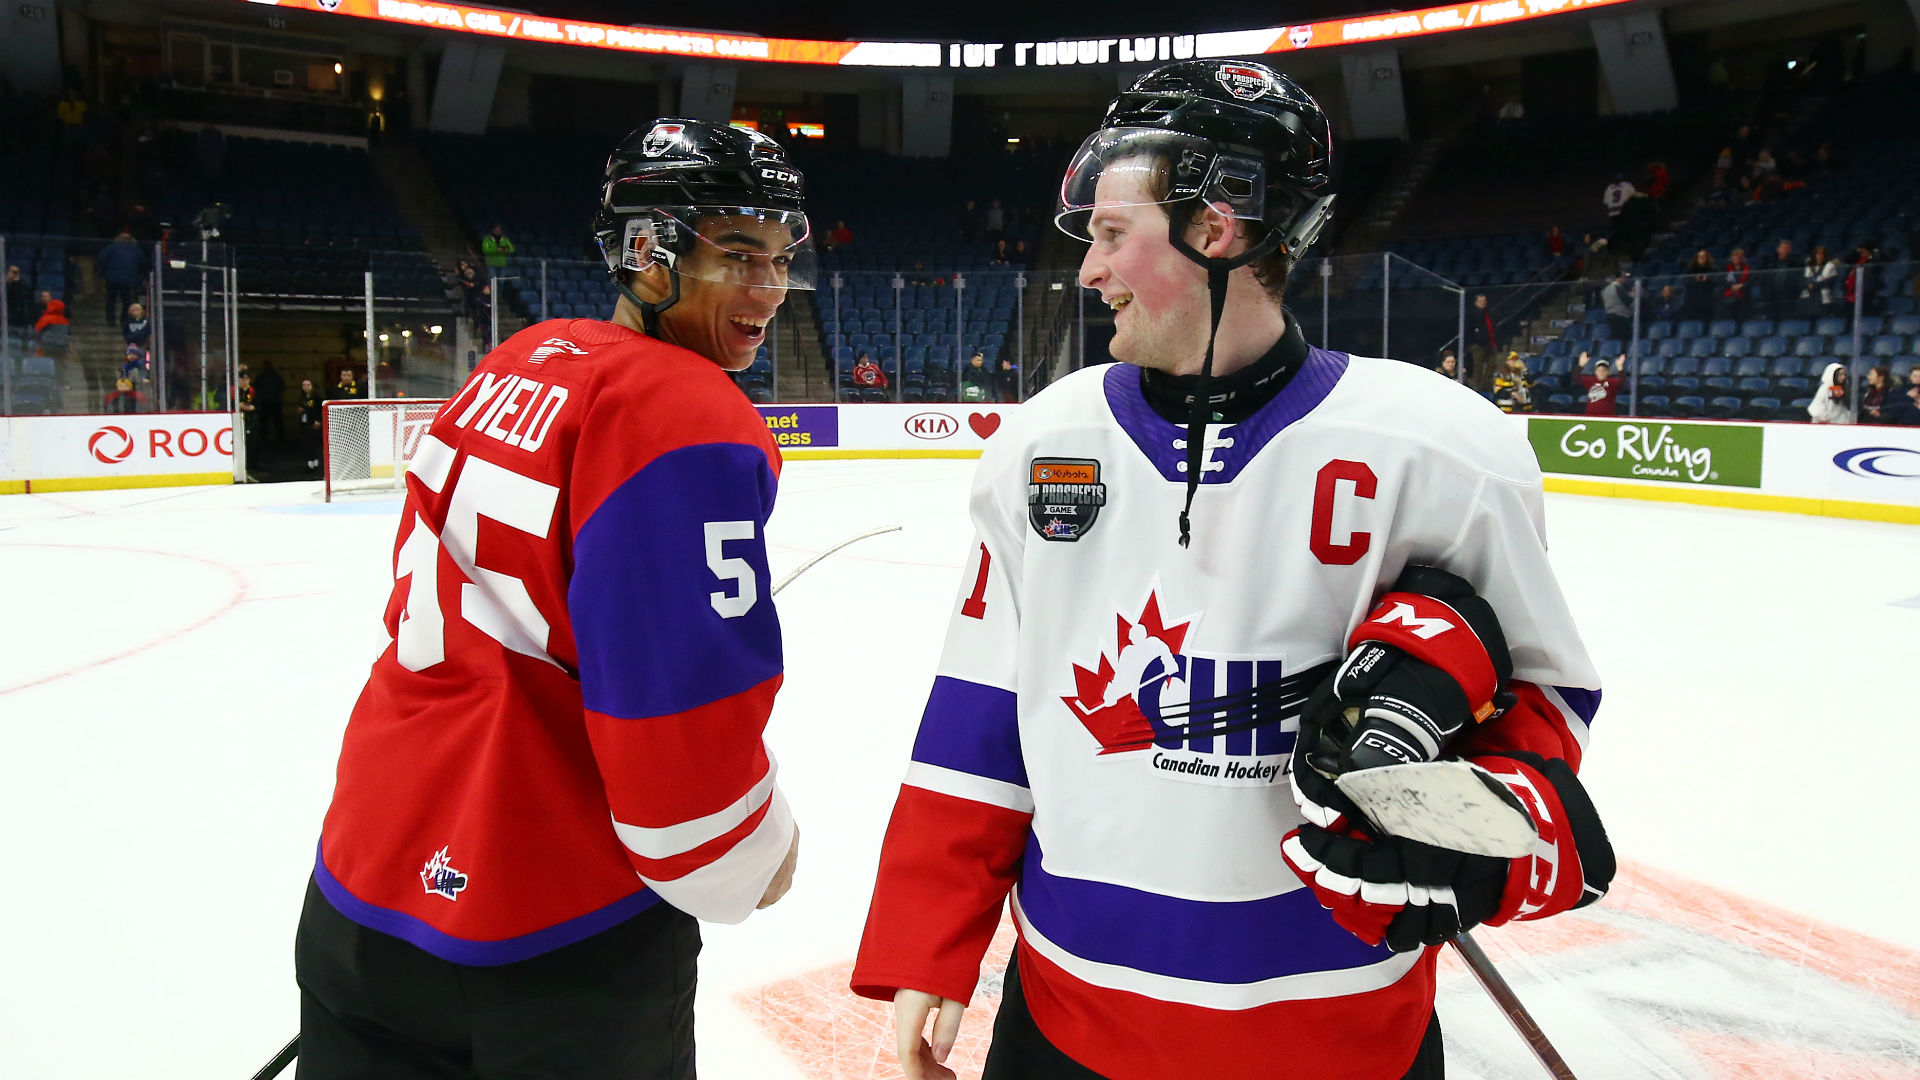 NHL Draft 2020: Alexis Lafreniere, Quinton Byfield among standouts at CHL/NHL Top Prospects Game